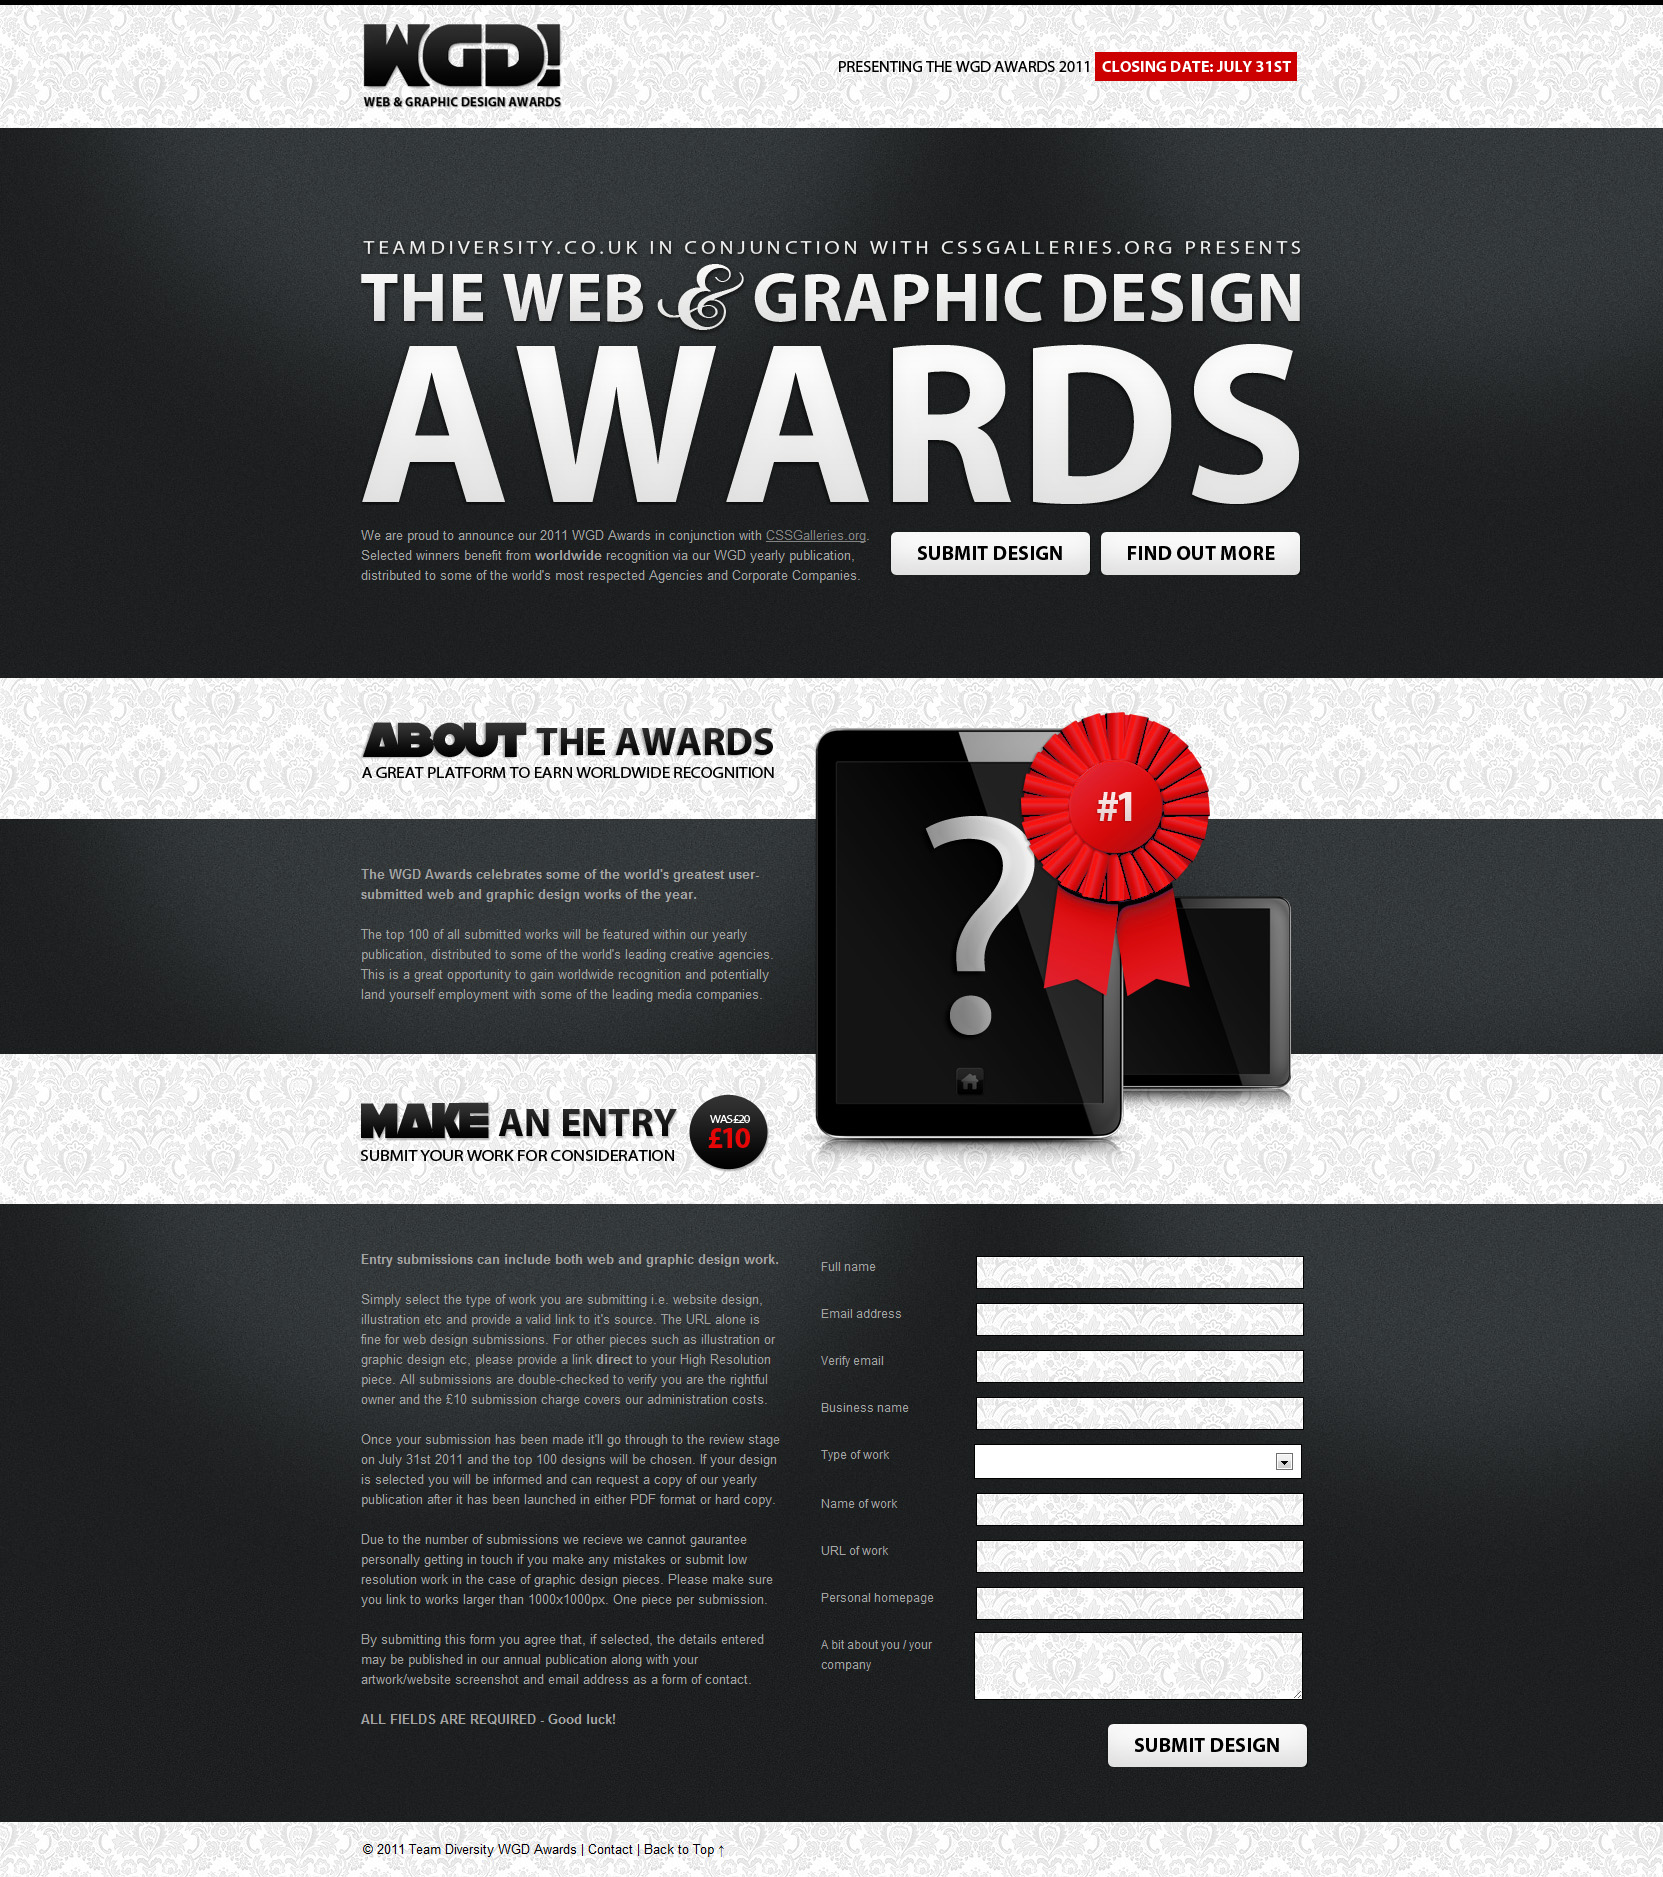 2011 WGD Awards Website Screenshot